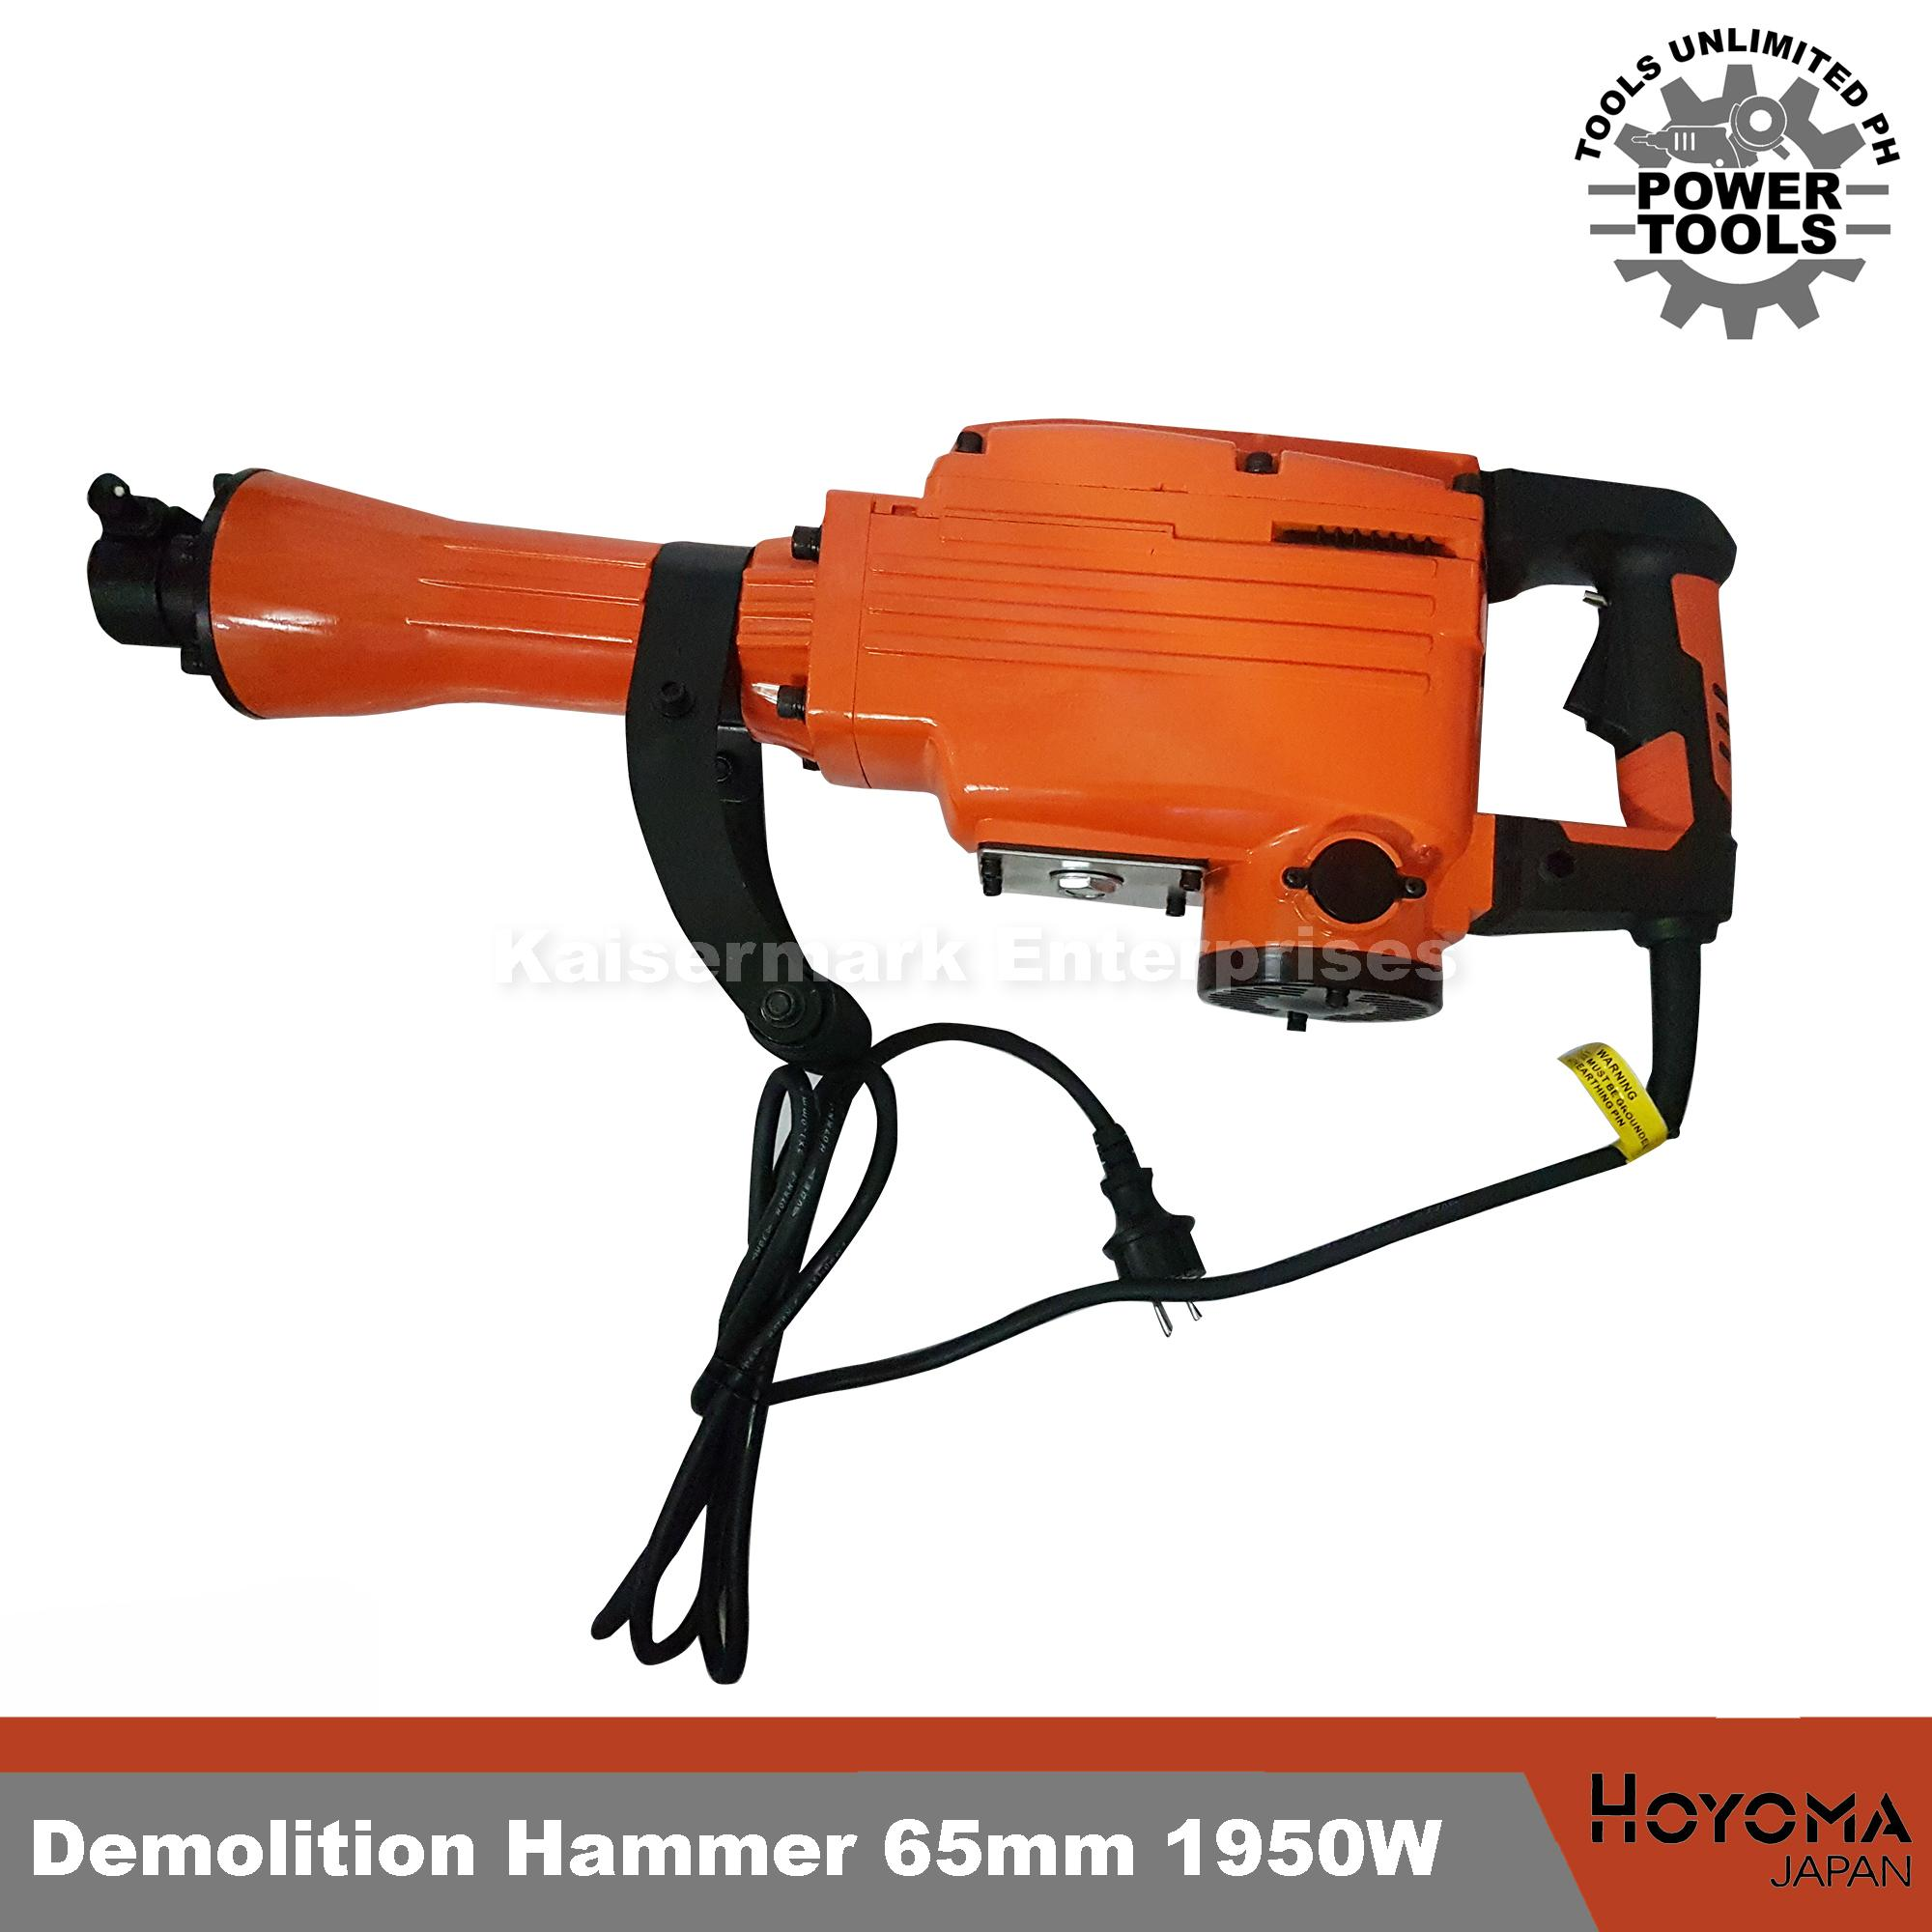 Hoyoma Japan Demolition Hammer 1950W Philippines